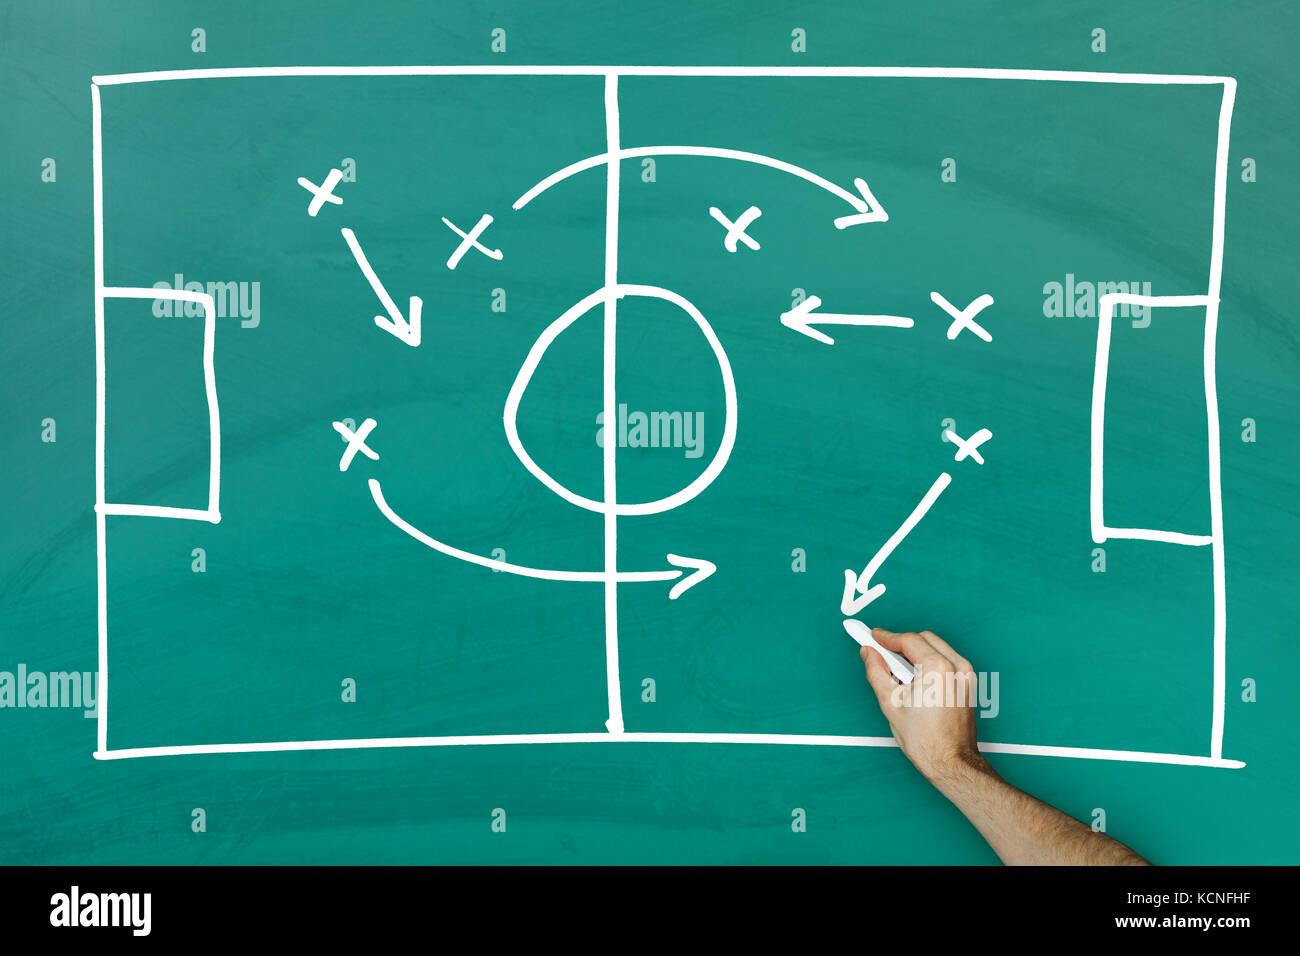 Football Field On Blackboard Stockfotos & Football Field On ...